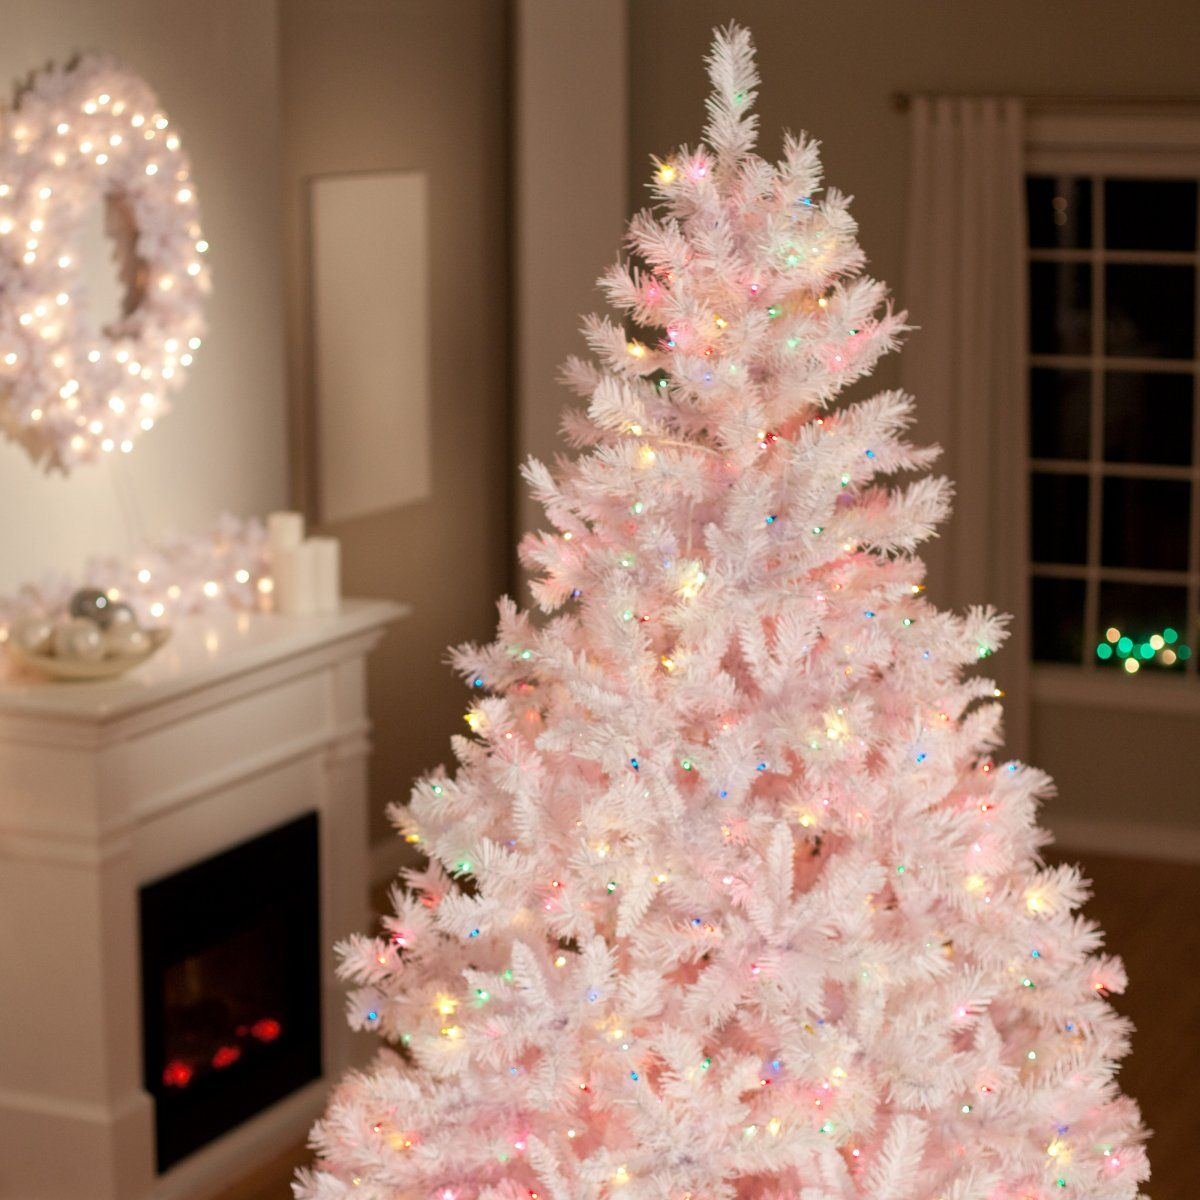 Where To Buy A Nice Artificial Christmas Tree: Create A Winter Wonderland In Your Home With A White